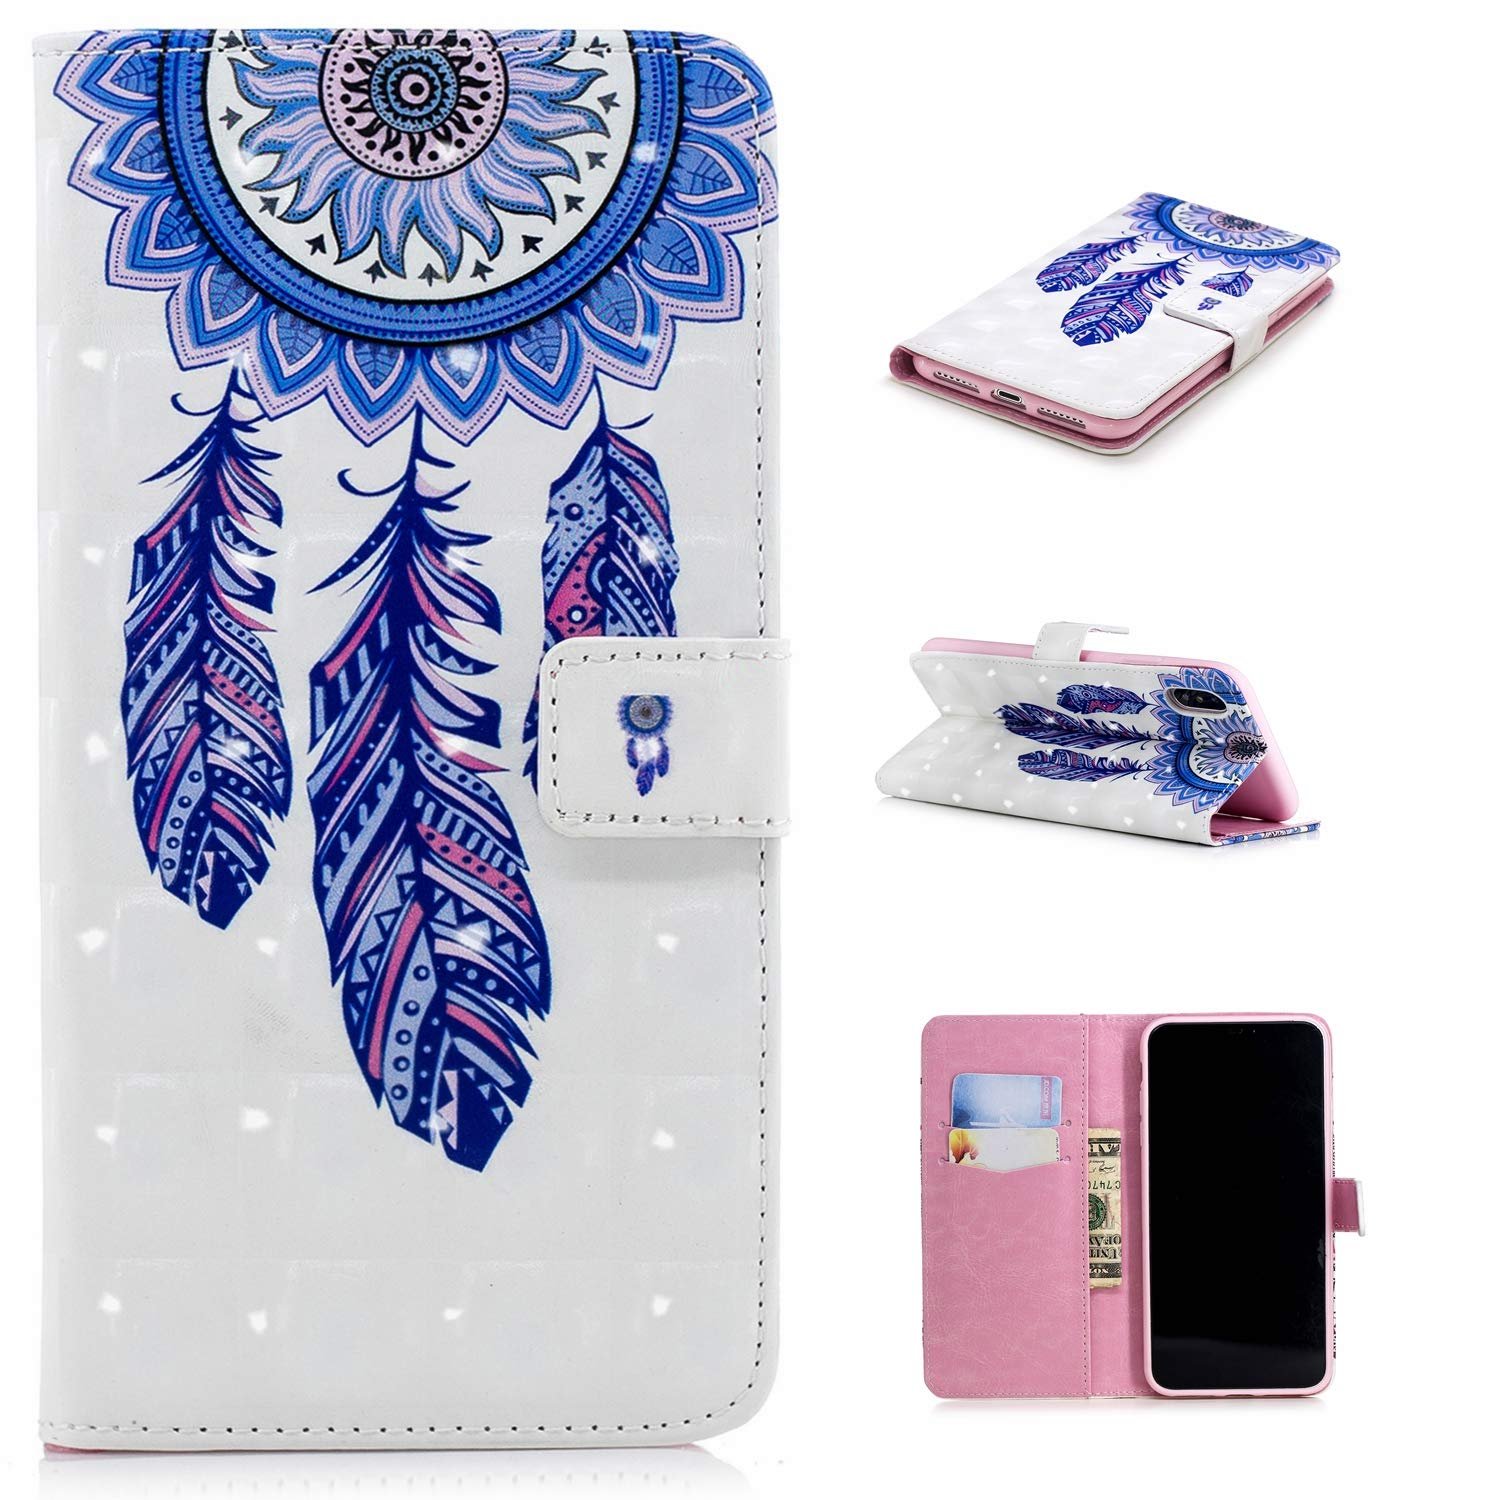 für Smartphone Apple iPhone X/iPhone XS Hülle, Leder Tasche für Apple iPhone X/iPhone XS (5.8 Zoll) 2018 Flip Cover Handyhülle Bookstyle mit Magnet Kartenfächer Standfunktion #11 (1) Laoke